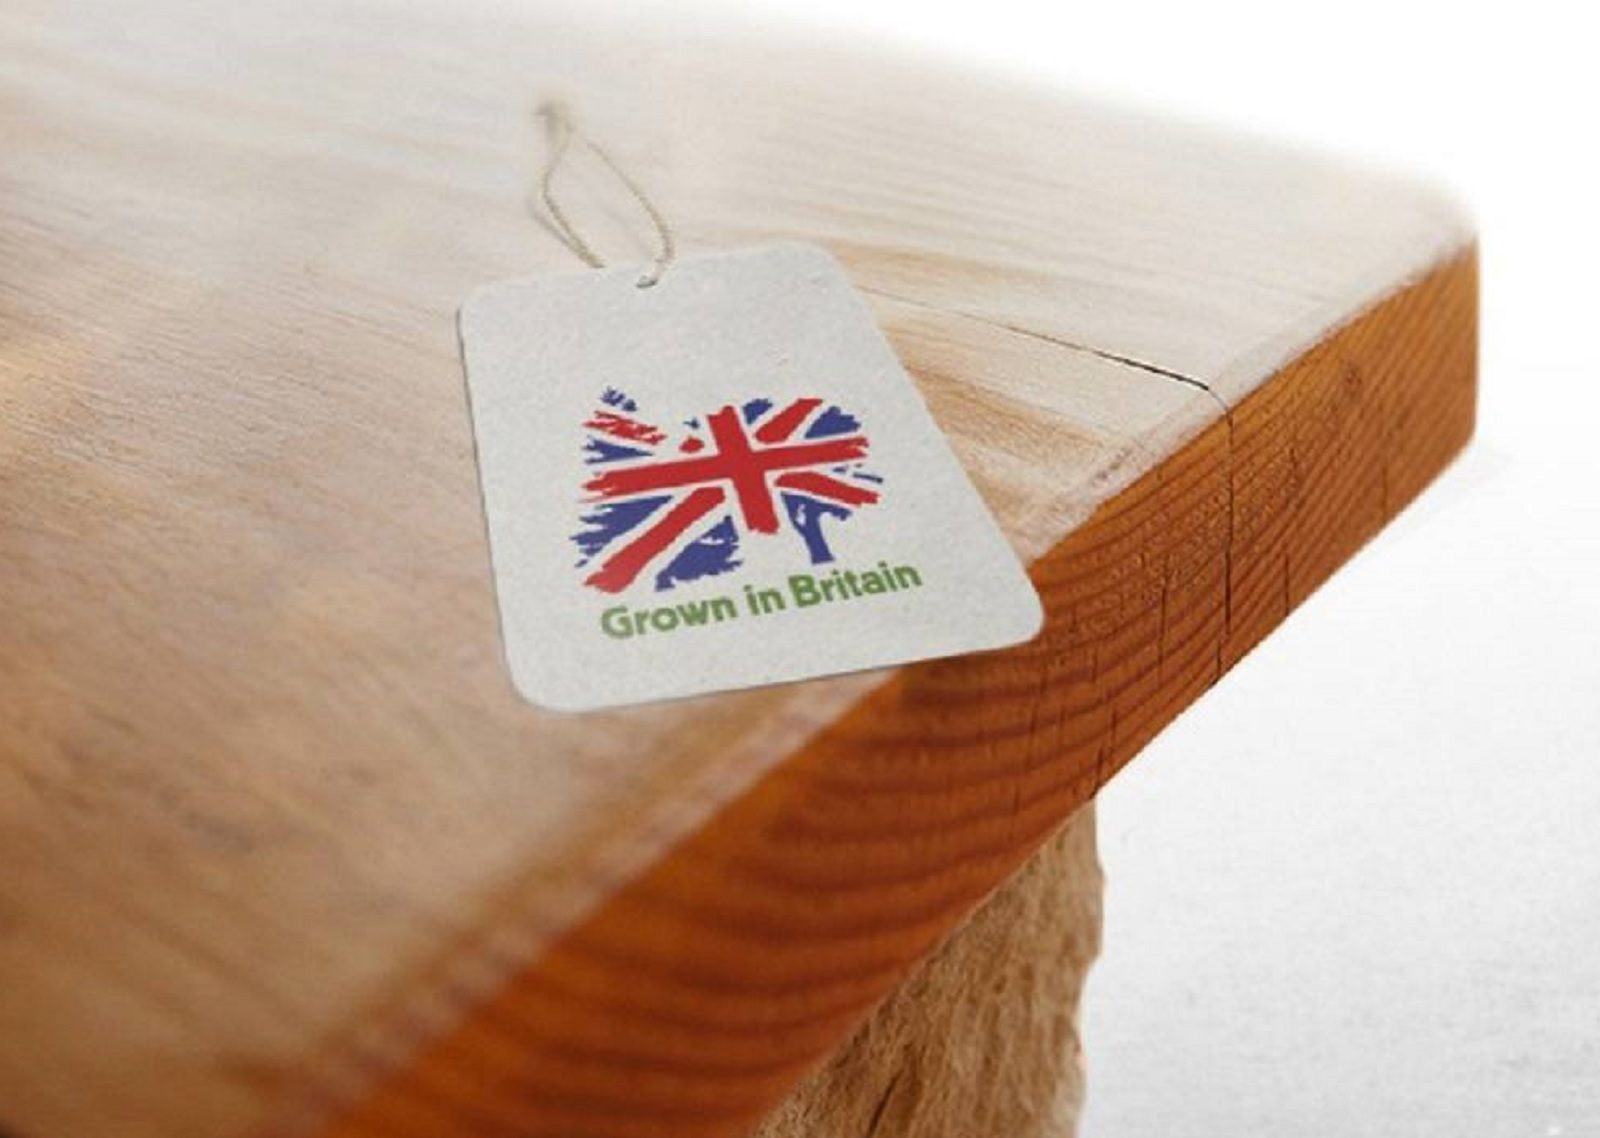 grown-in-britain-table-badge